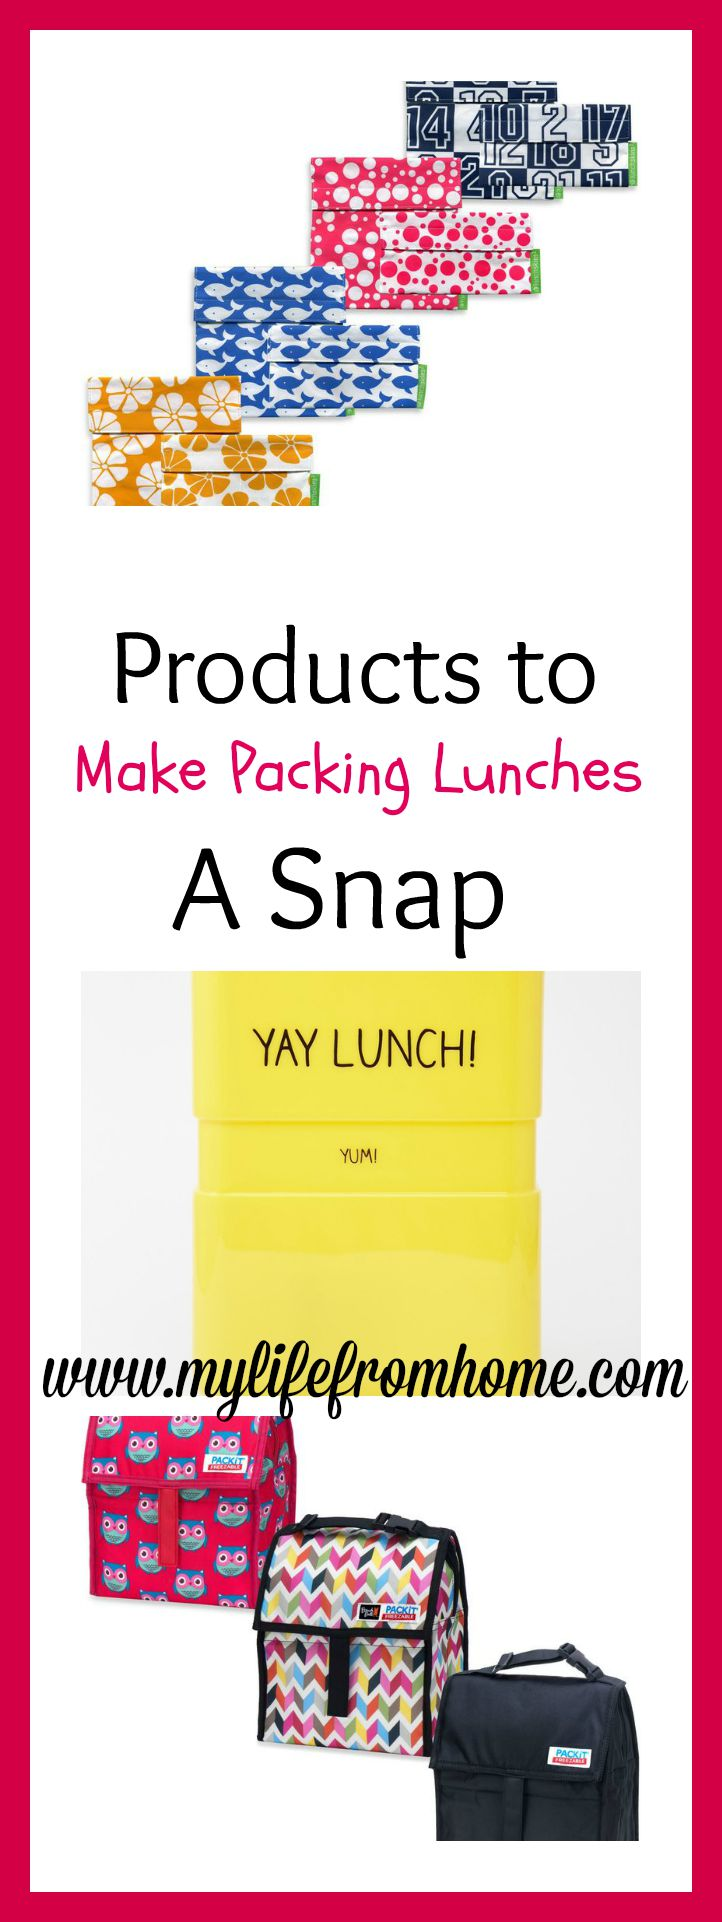 Products to Make Packing Lunches A Snap by www.mylifefromhome.com